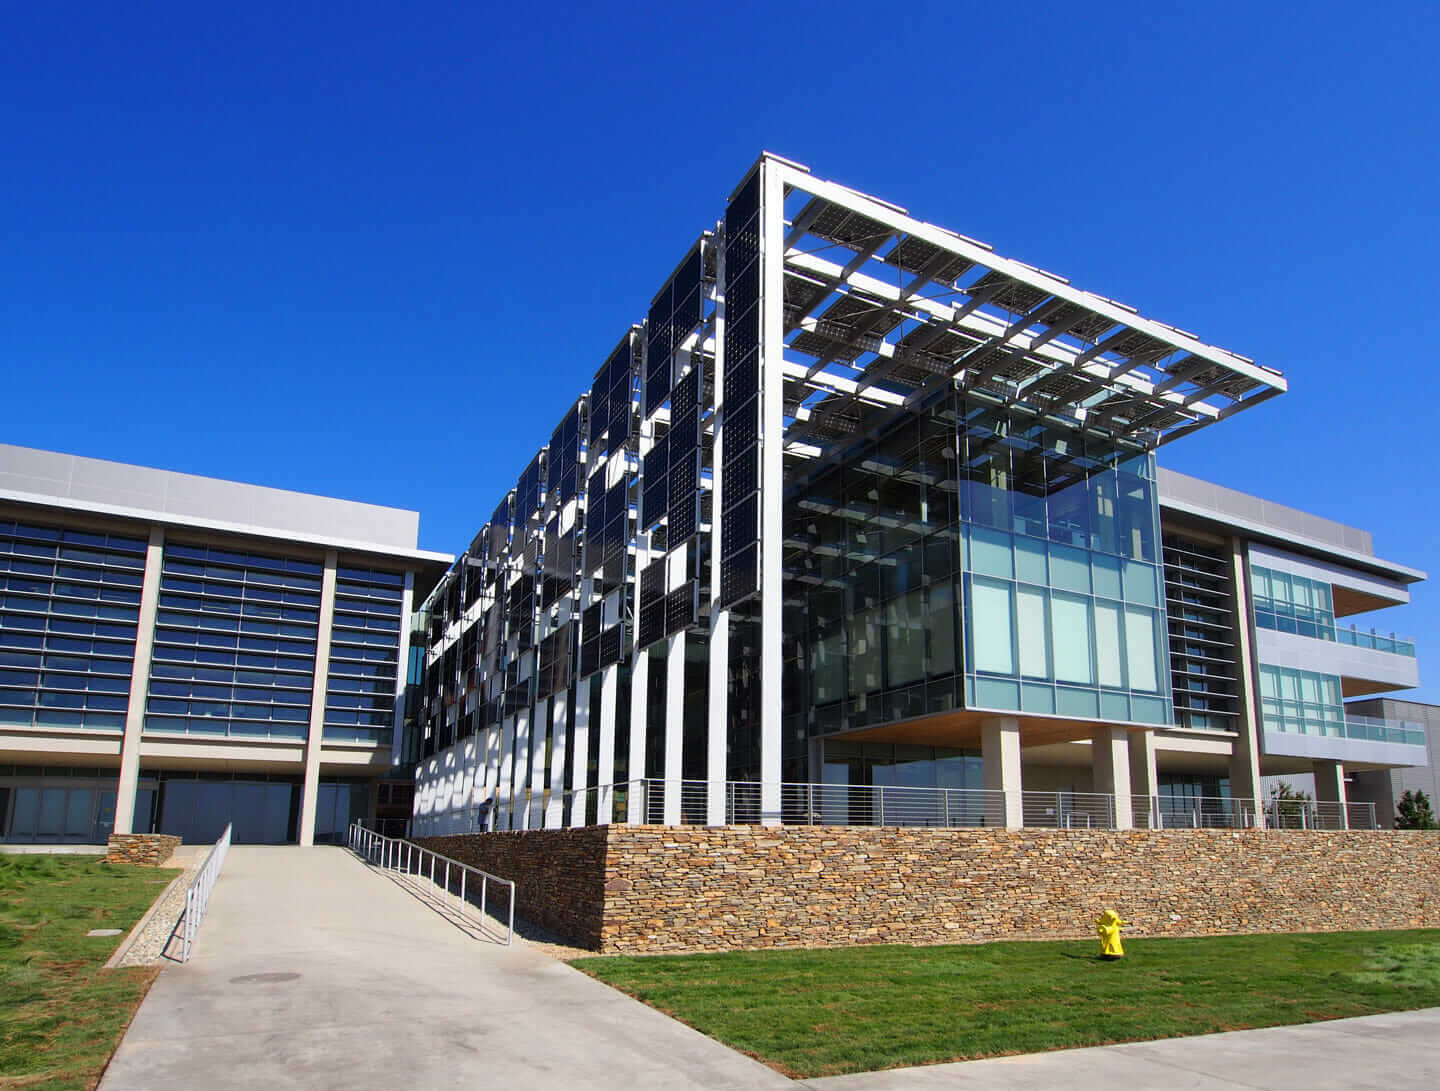 uc merced science and engineering structural detailing